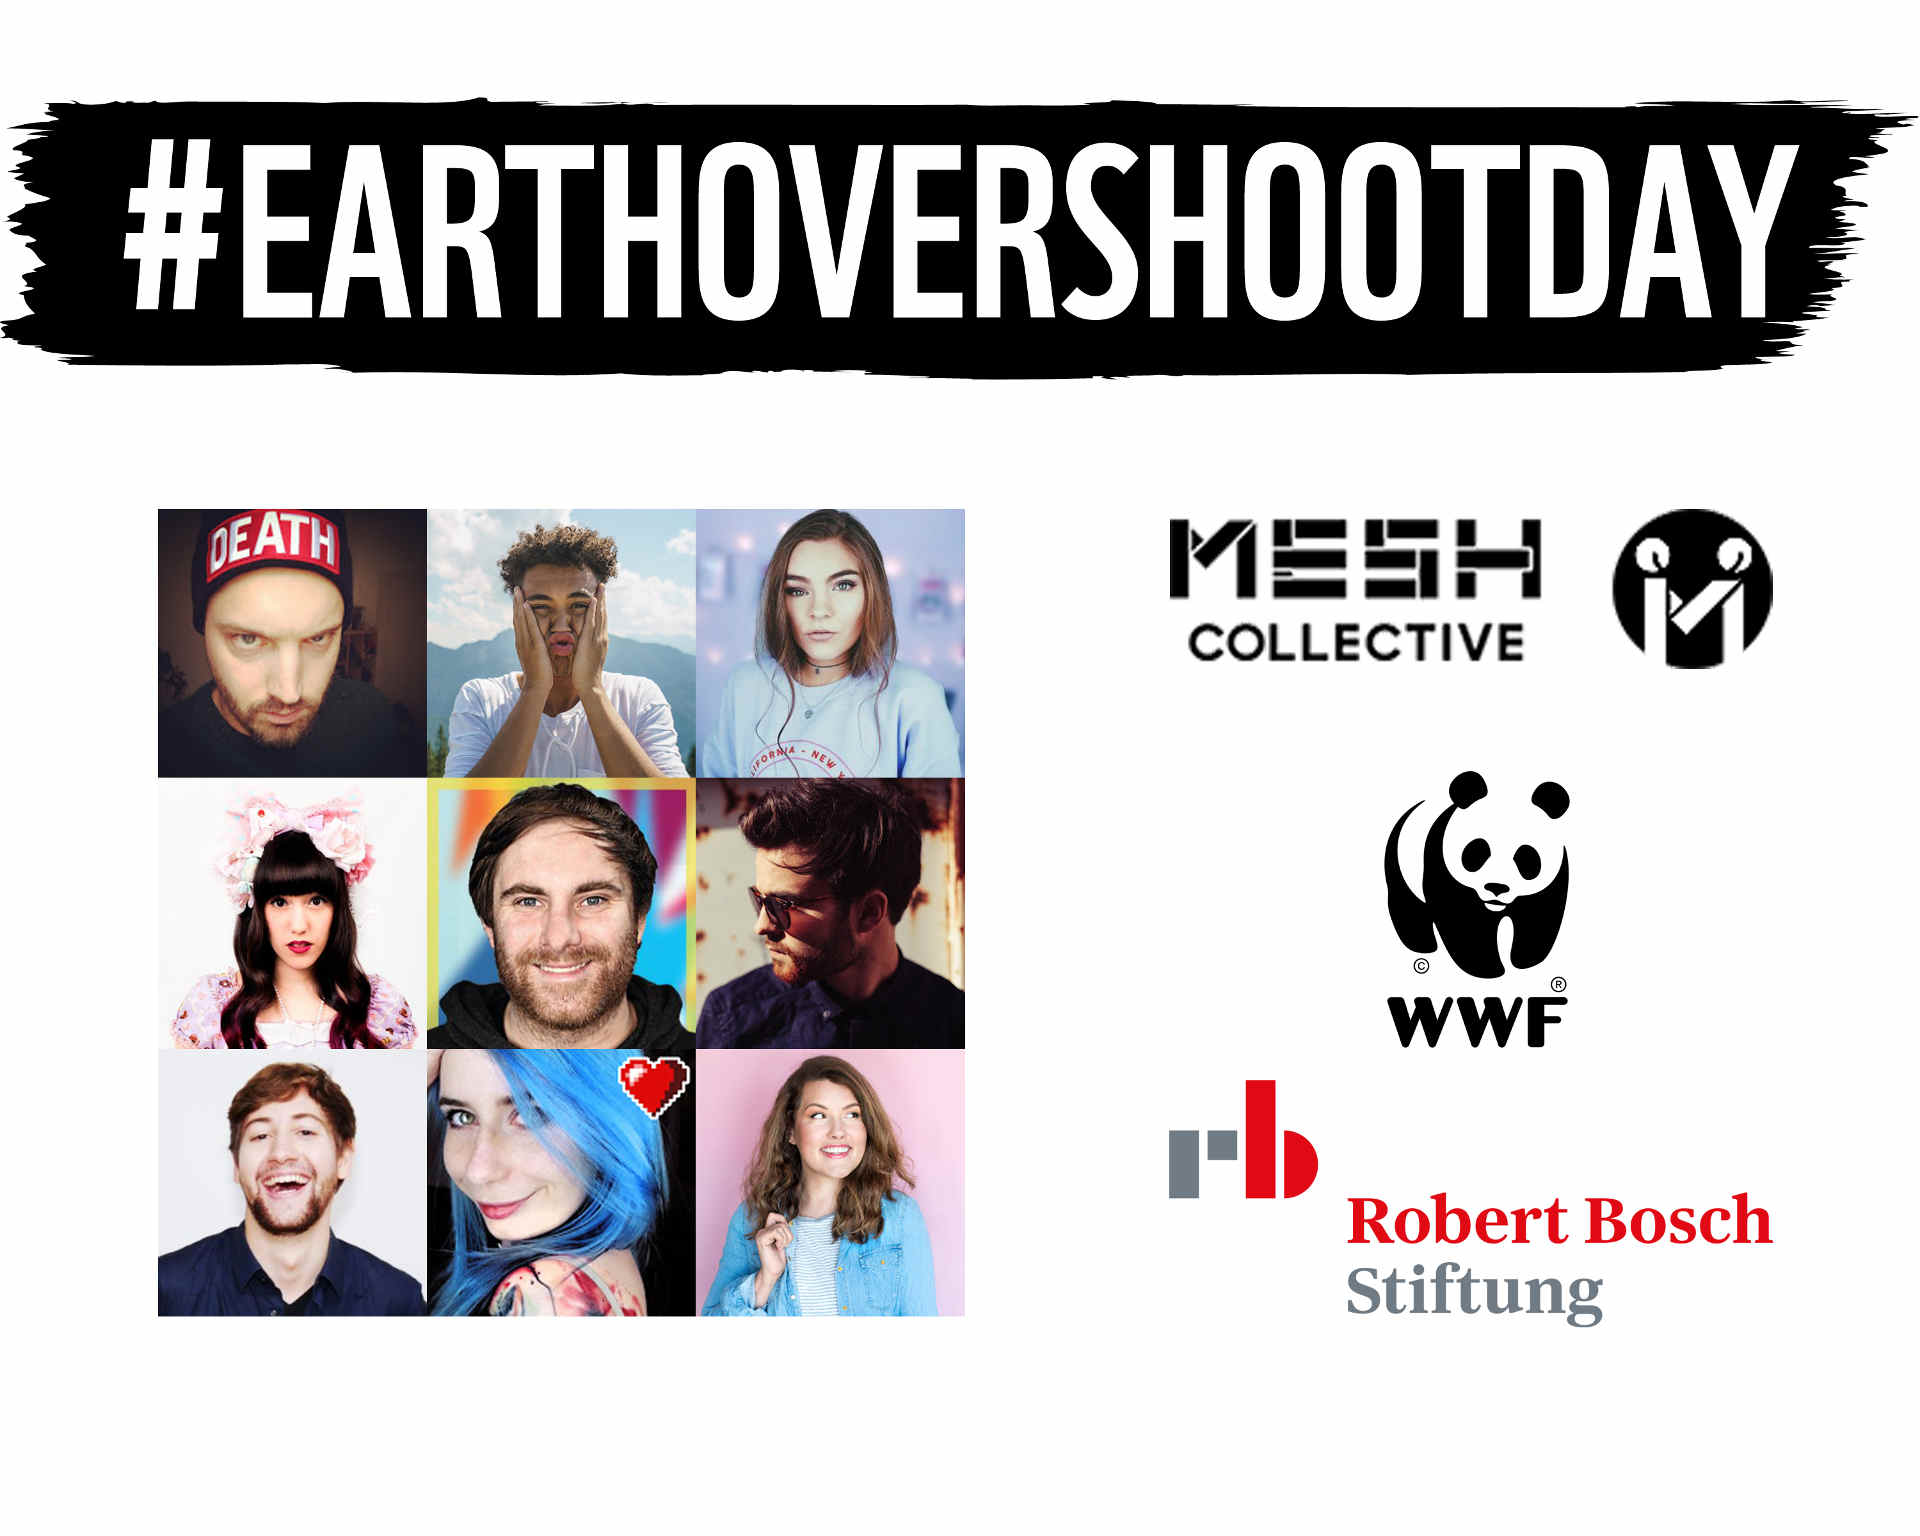 Earthovershootday Youtube Meets Science Wwf Blog